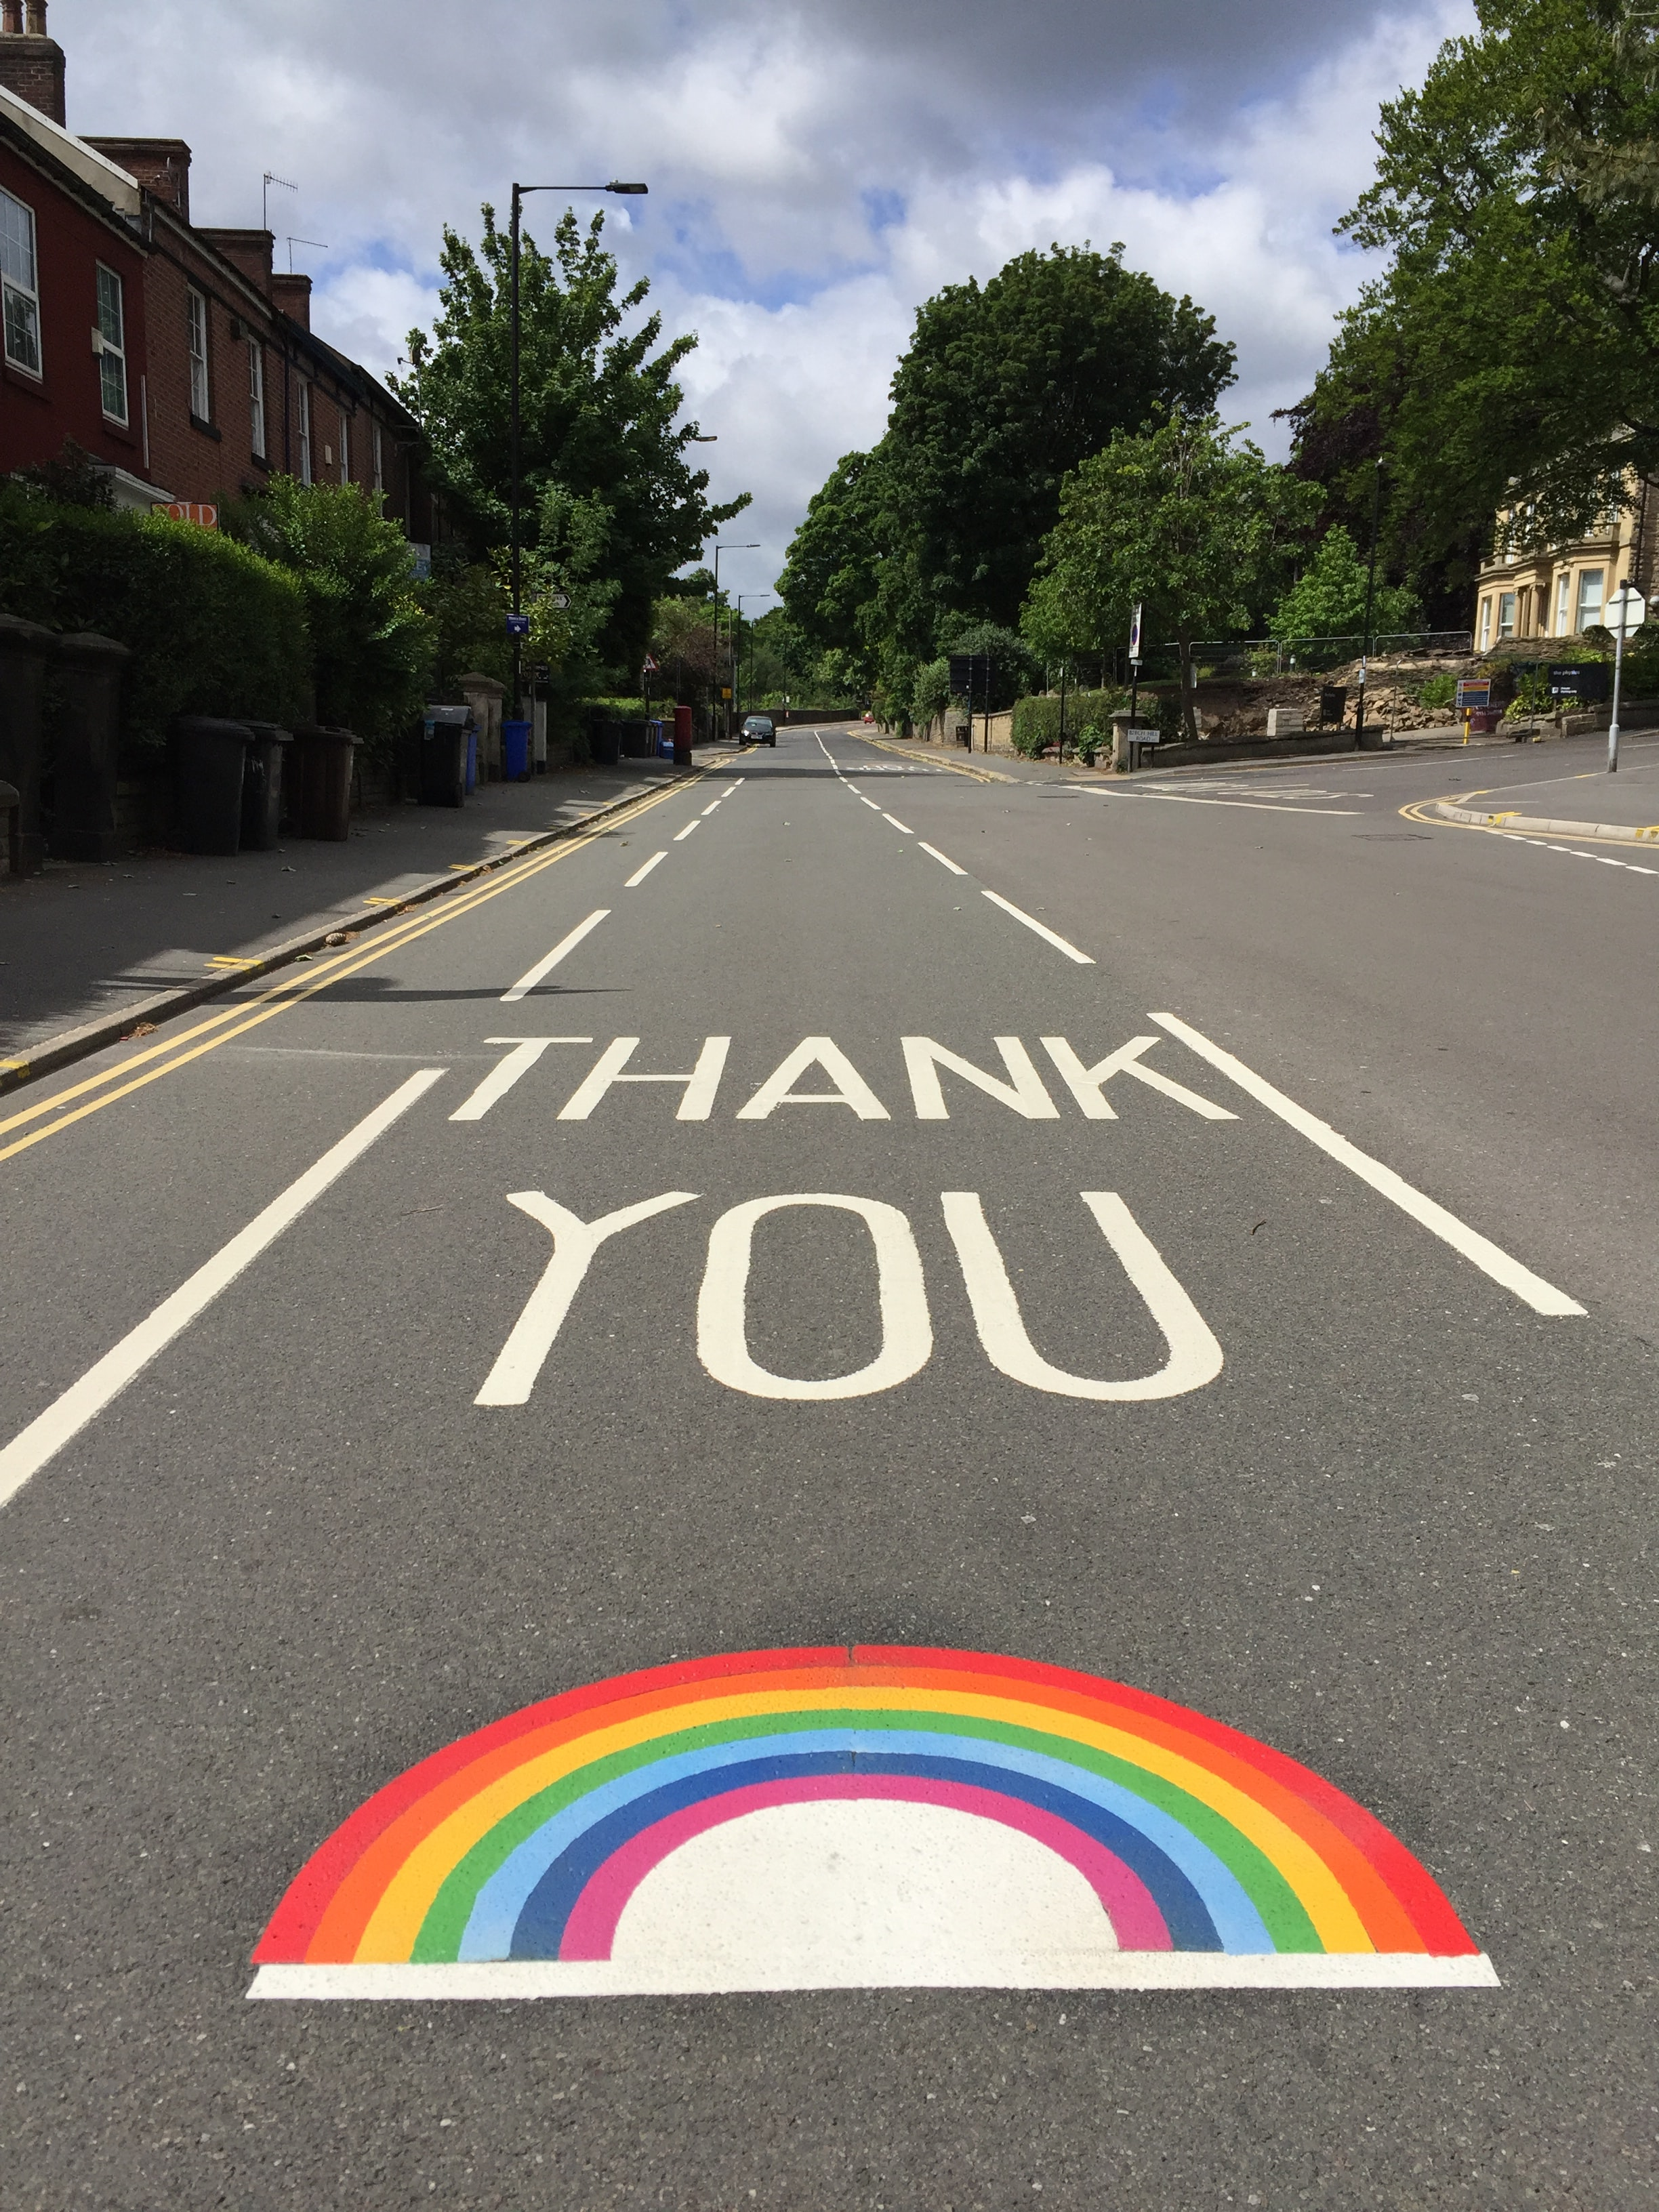 Thank You painted on road